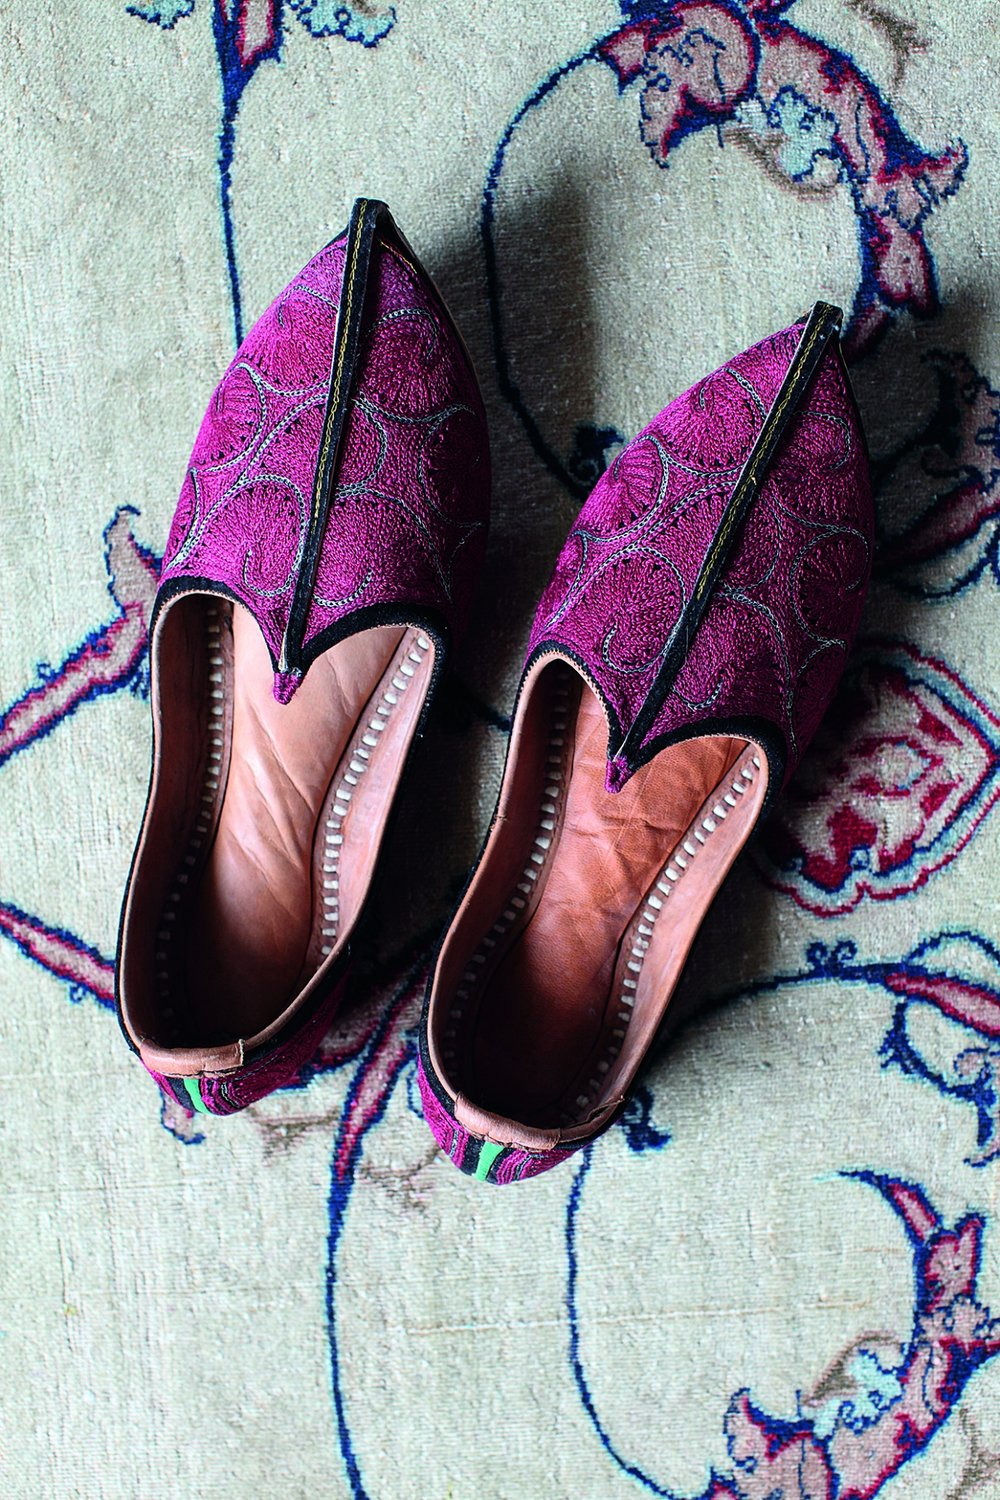 Mojaris slippers were introduced to India by Mughals in the sixteenth century. The soles are usually hard leather, whereas the uppers are often elaborately embroidered